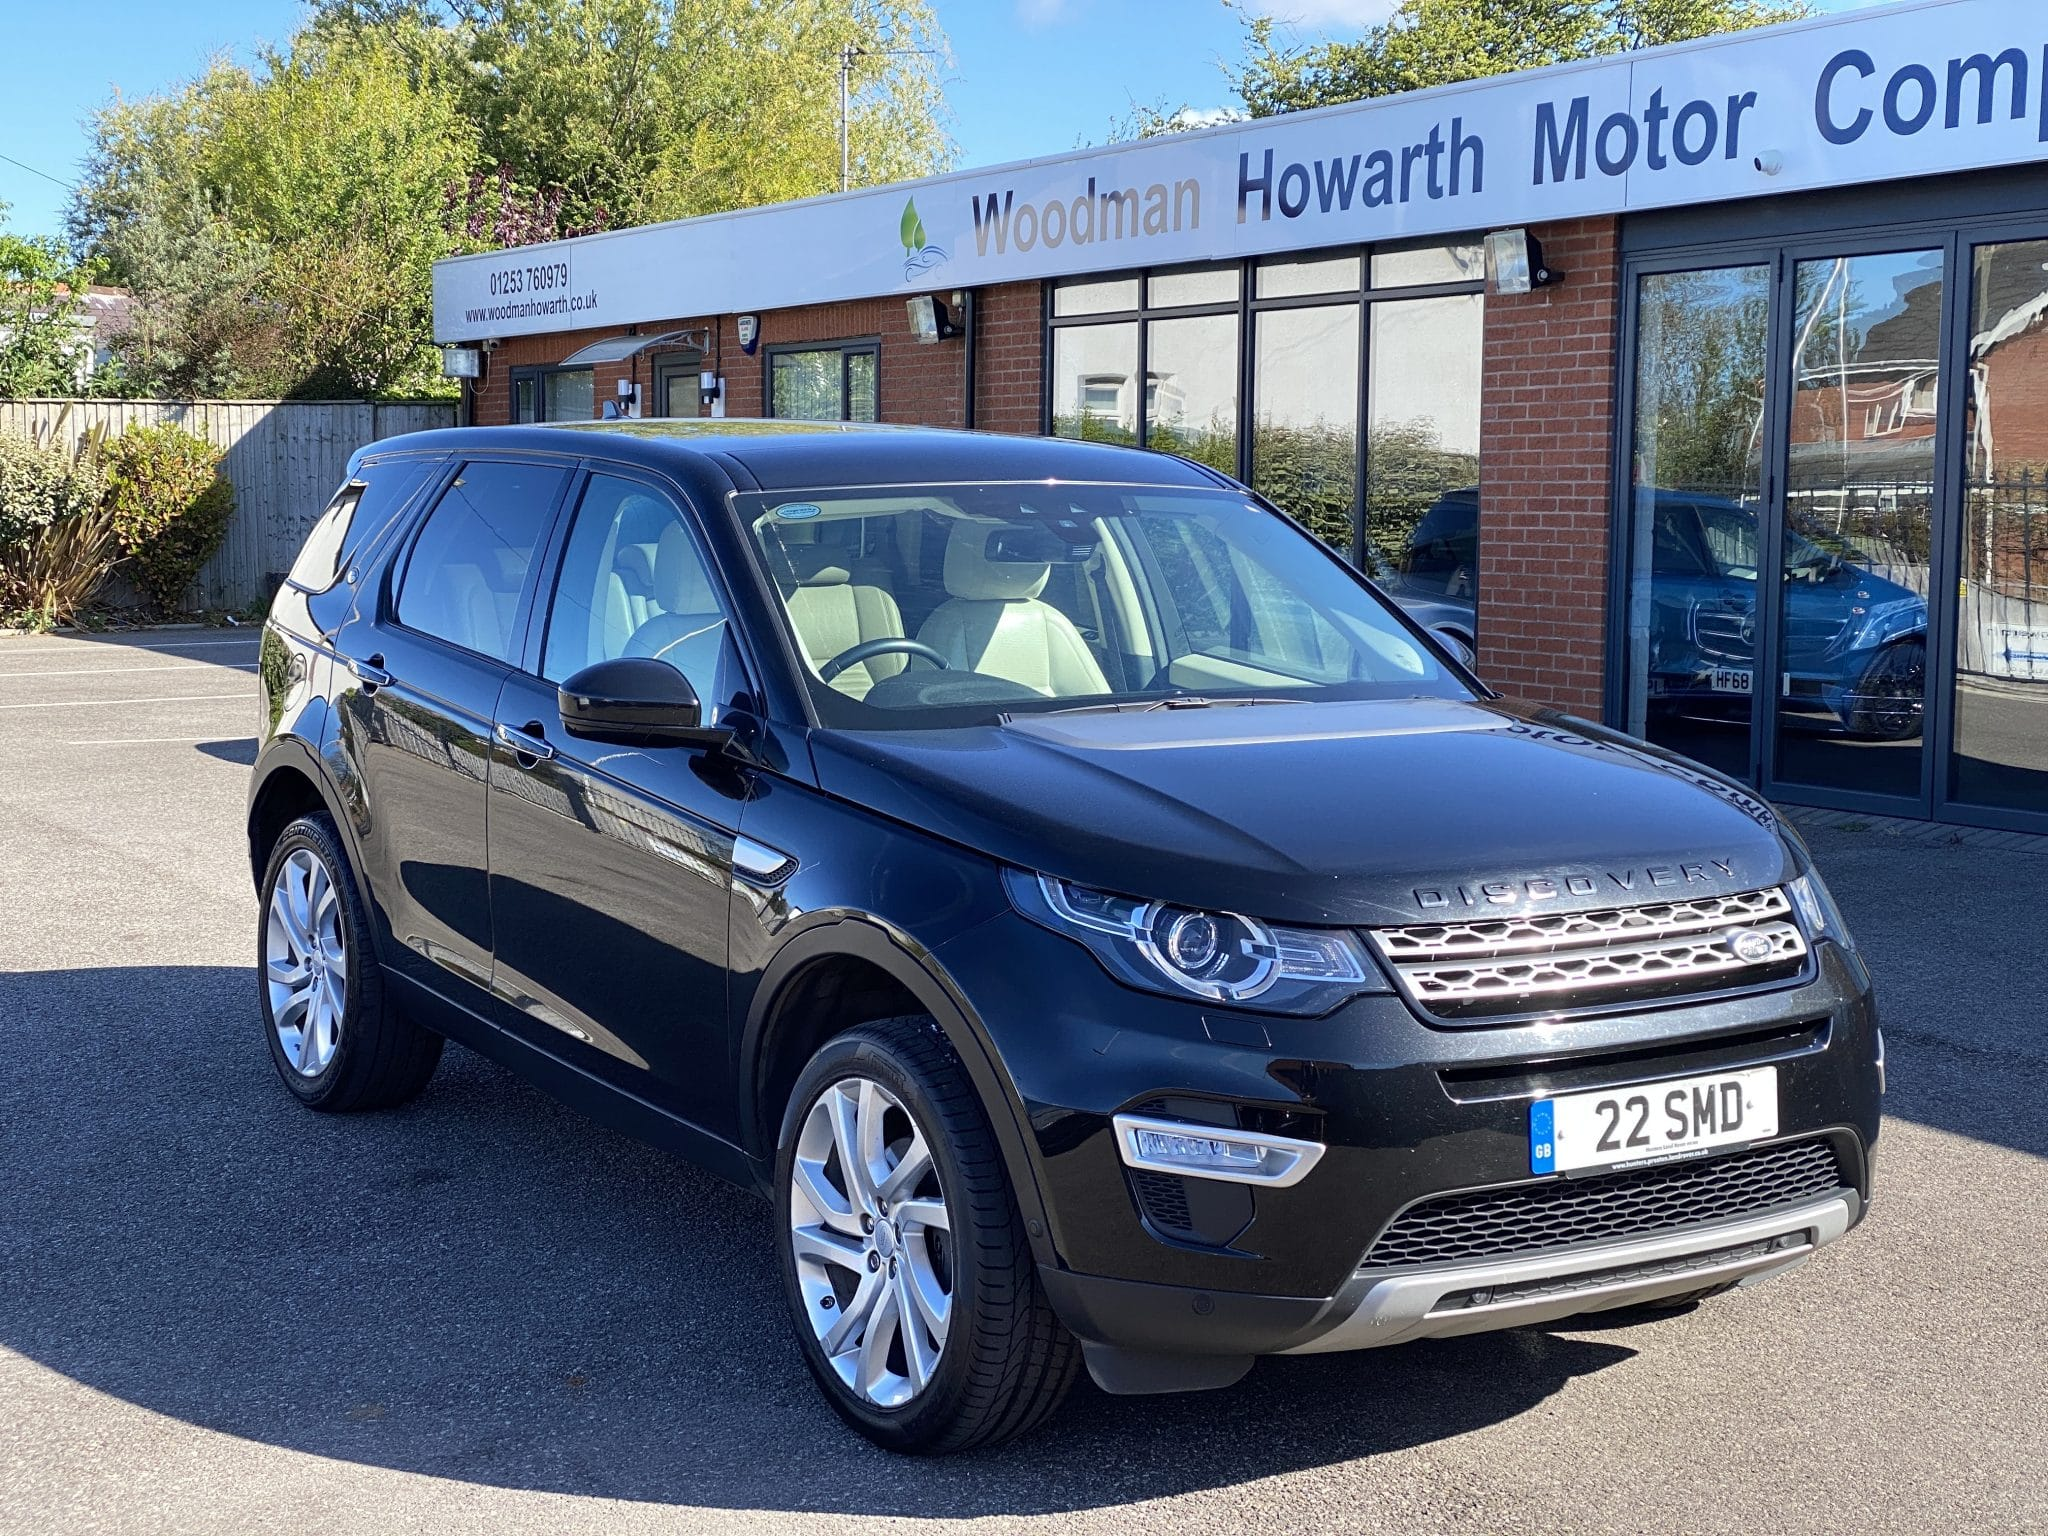 2015 65 LANDROVER DISCOVERY SPORT 2.0 TD4 HSE LUXURY 180 BHP AUTO 1 Lady Owner Huge Spec